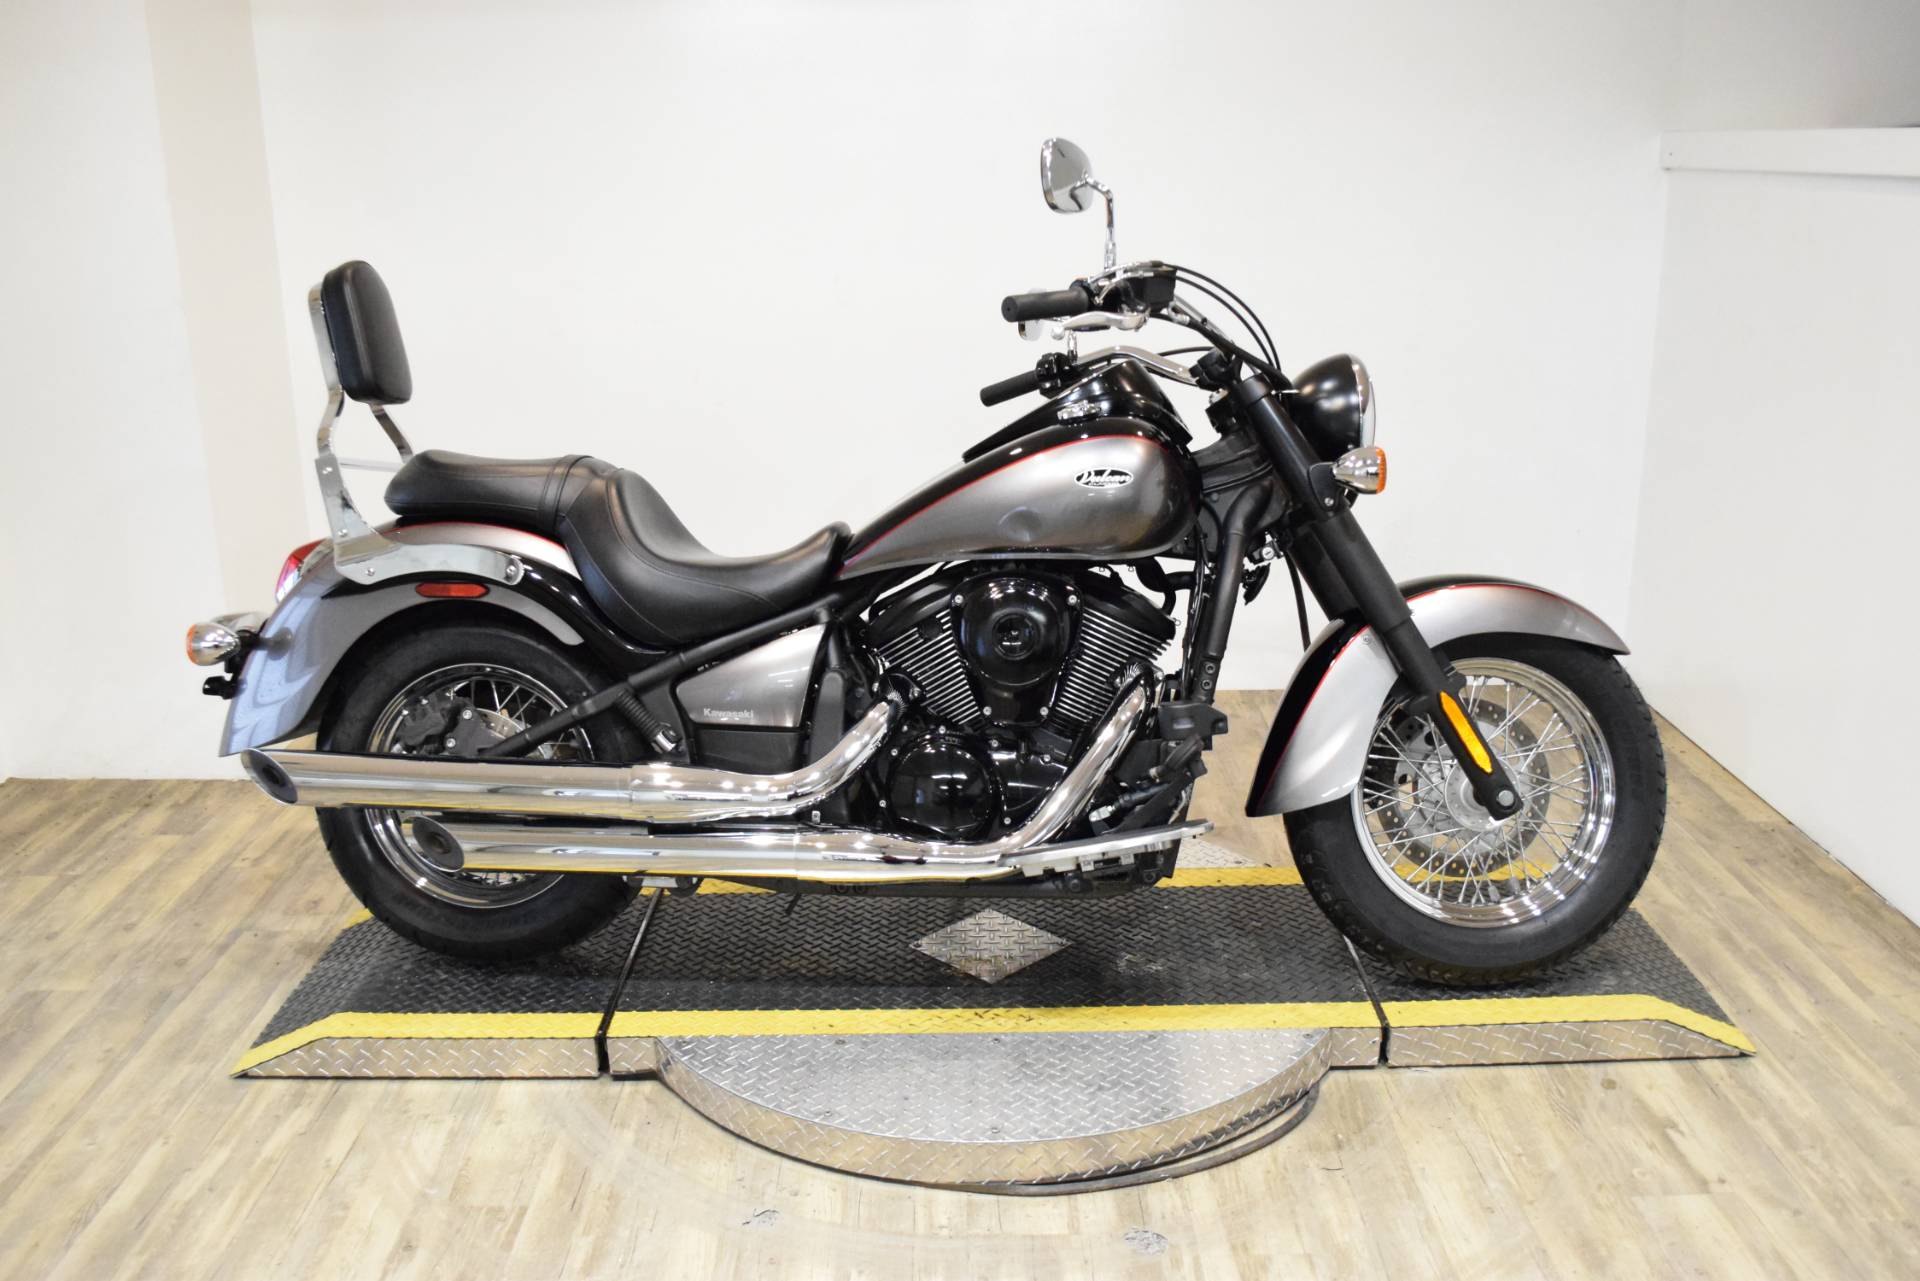 2014 Kawasaki Vulcan® 900 Classic in Wauconda, Illinois - Photo 1